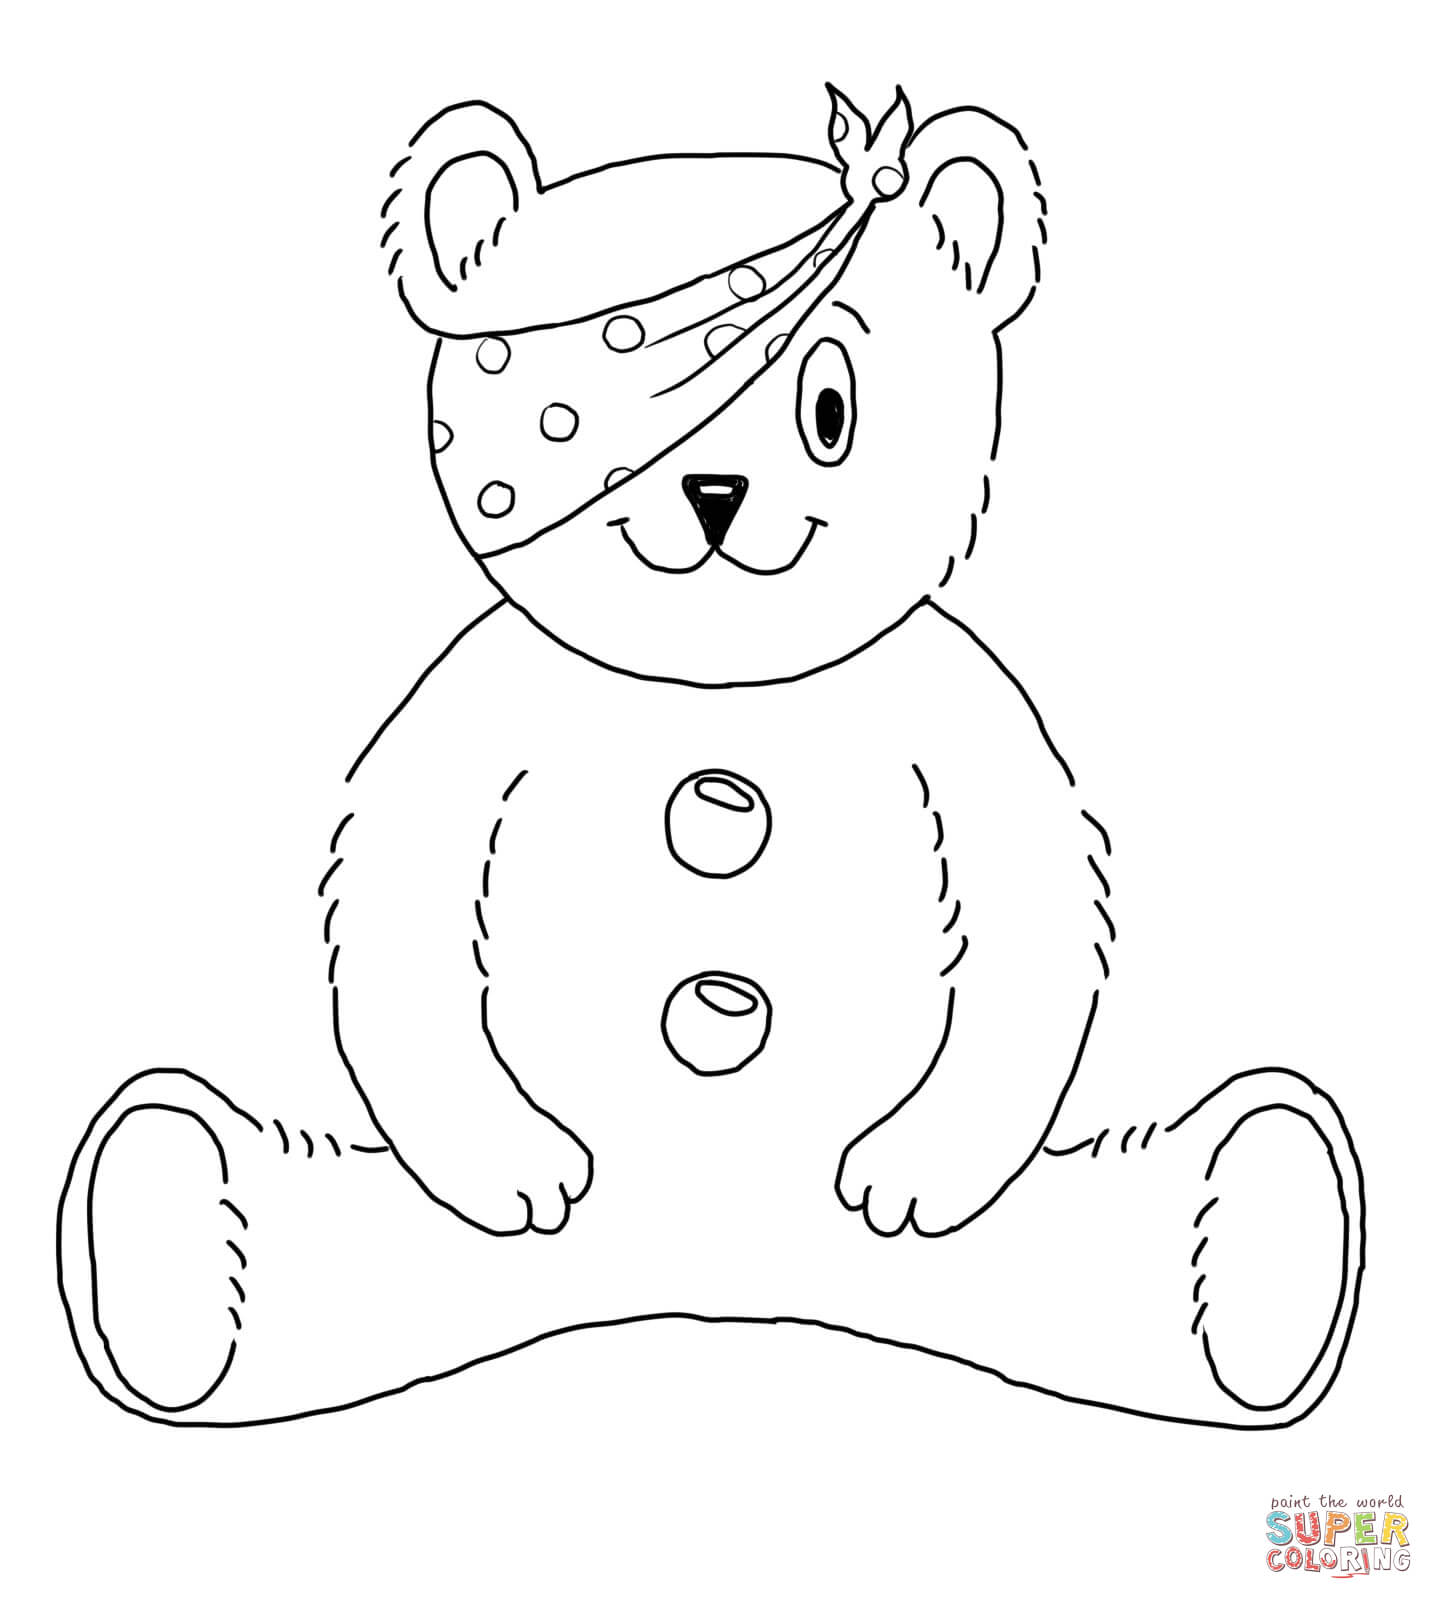 pudsey bear colouring in 10 best pudsey colouring sheets images on pinterest bear colouring in pudsey bear